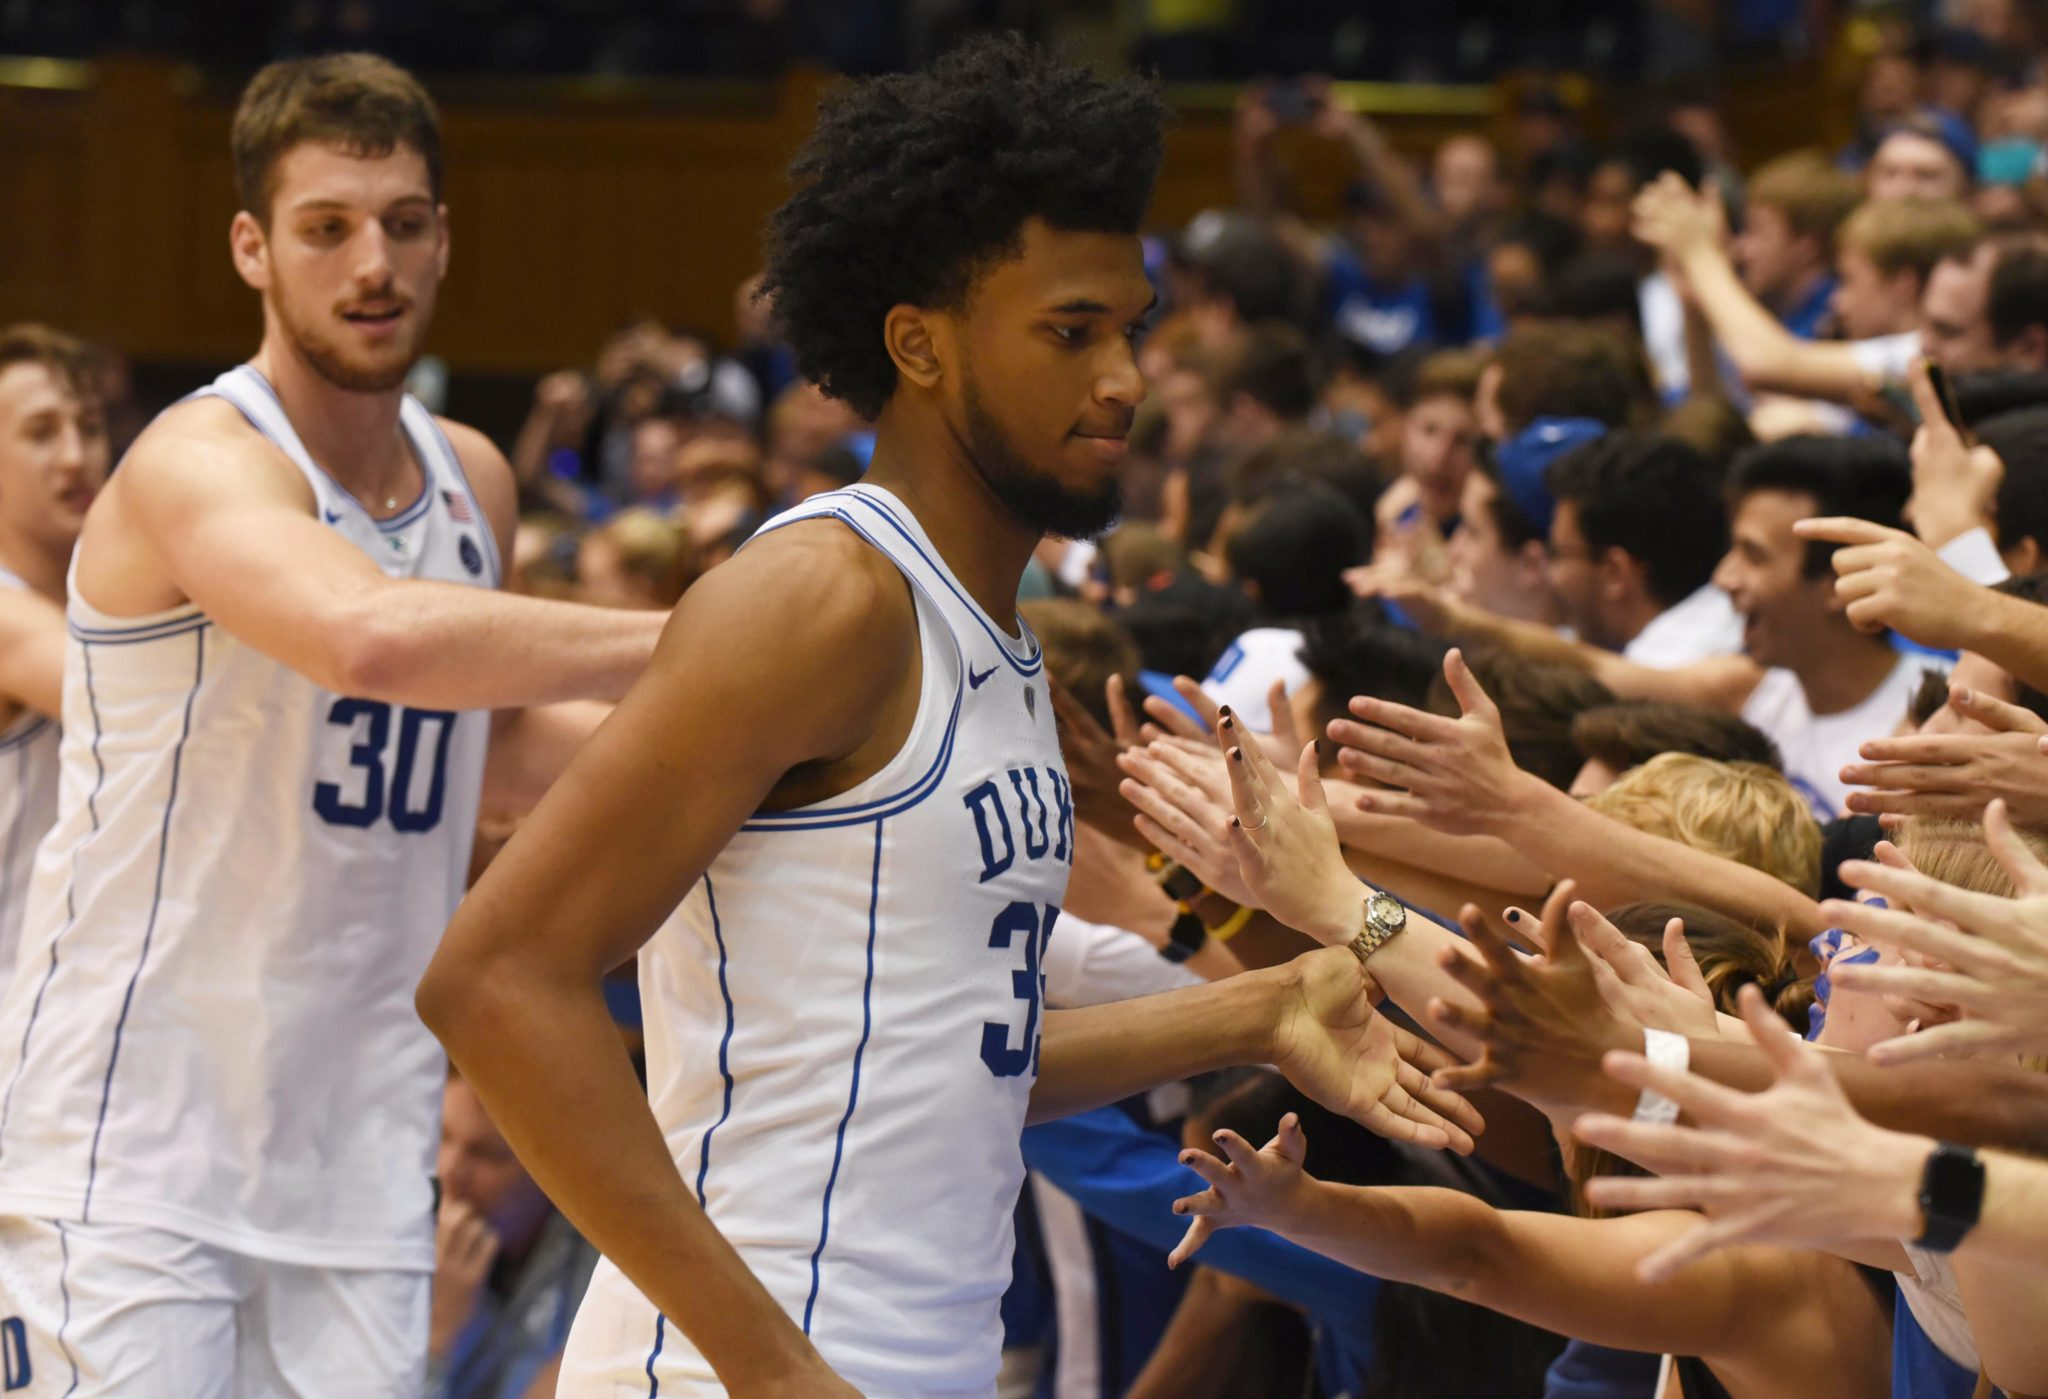 ab5b4b13a The Good And The Bad From Marvin Bagley s Debut Weekend